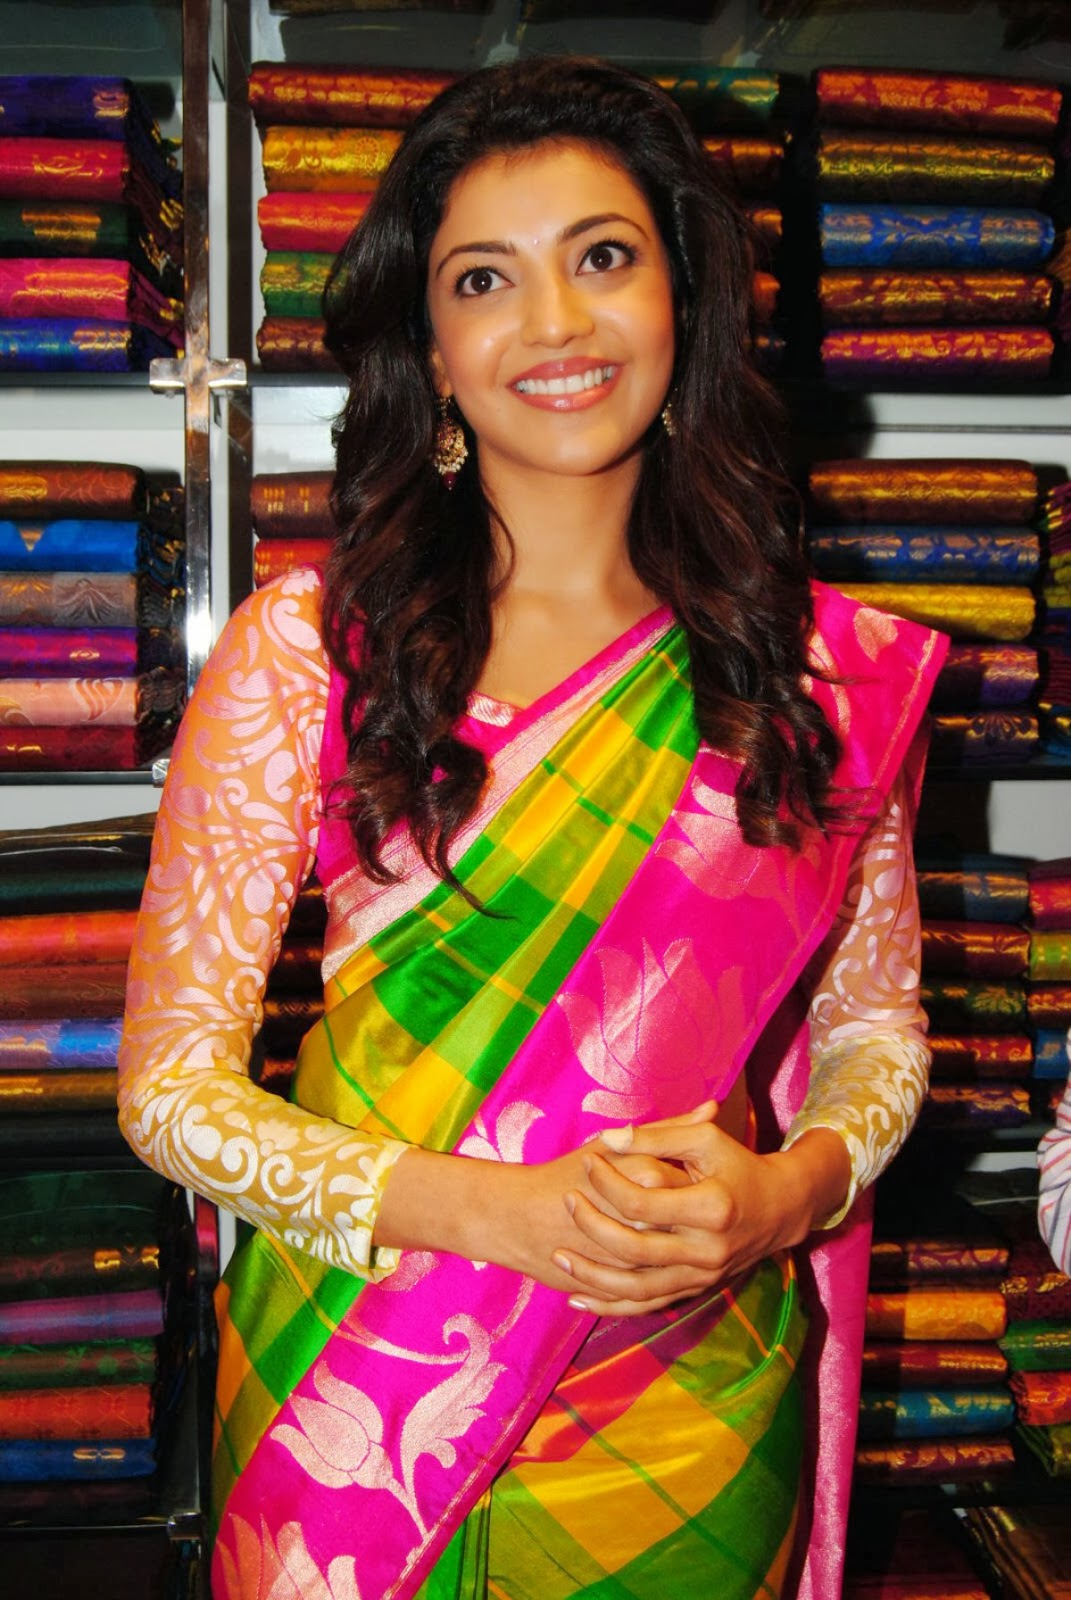 Cute Kajal agarwal photos in ethnic saree at shopping mall launch bollywood, Tollywood, sweetheat, hot sexy actress curvy, pic collection, image gallery